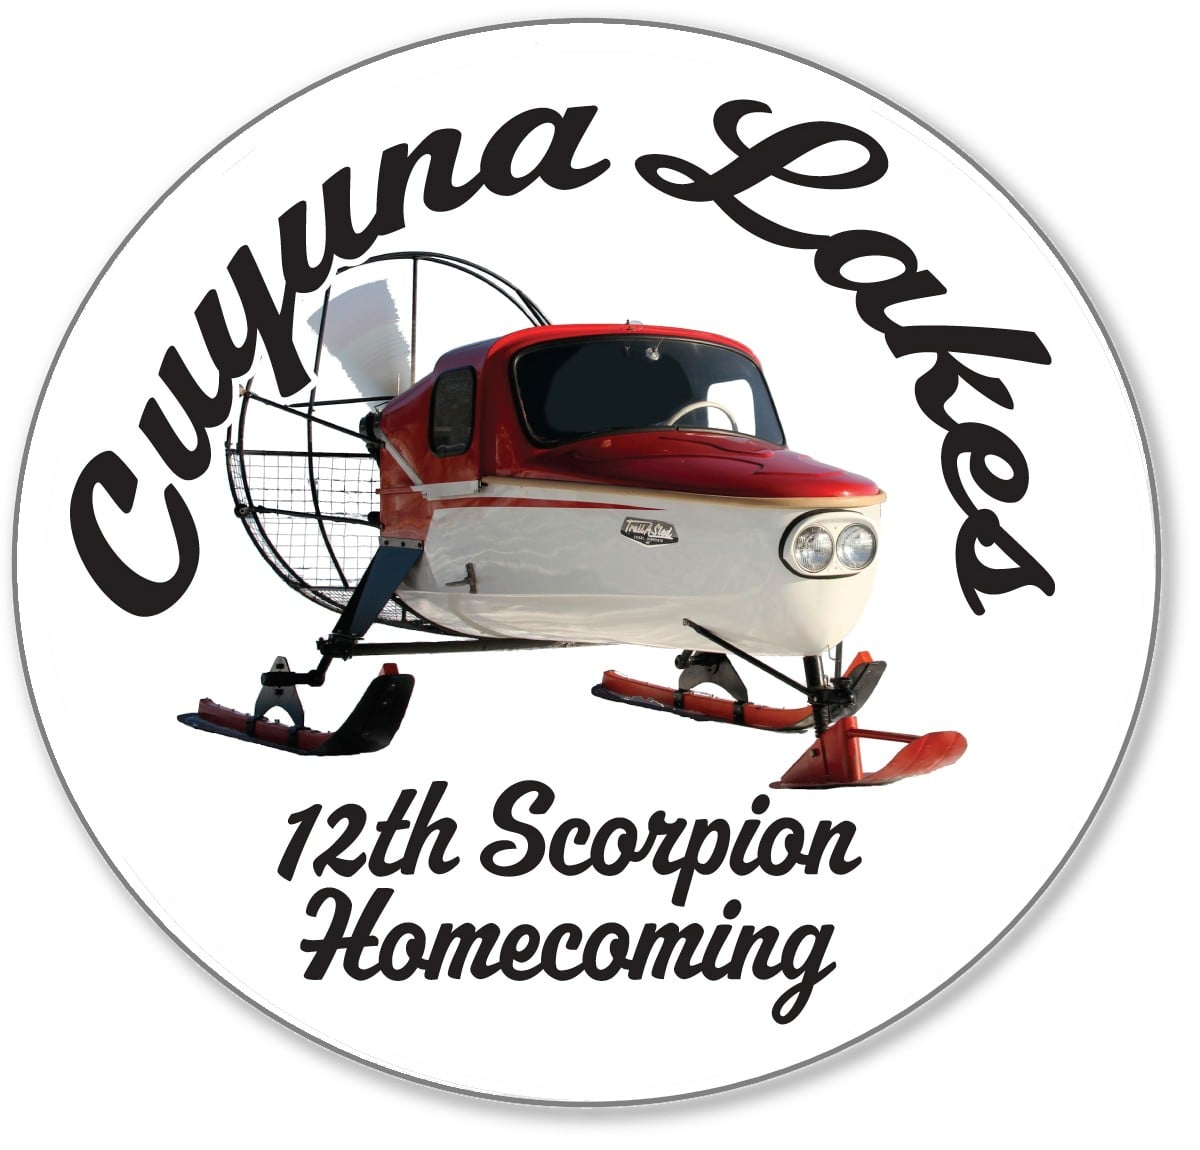 Support the event and the  Cuyuna Lakes Chamber of Commerce  by purchasing your official Scorpion Homecoming 2016 button at the on-ice warming tent. At the 2016 Homecoming we celebrate not only the 1970 Stinger, but also all non-snowmobile machines manufactured by the Crosby-Ironton based firm during its 20+ year existence, including this innovative 1963 air sled - capable of speeds over 110 miles per hour! And after twelve years, this commemorative button is still only $3.00! All profits support the  Cuyuna Lakes Chamber of Commerce.